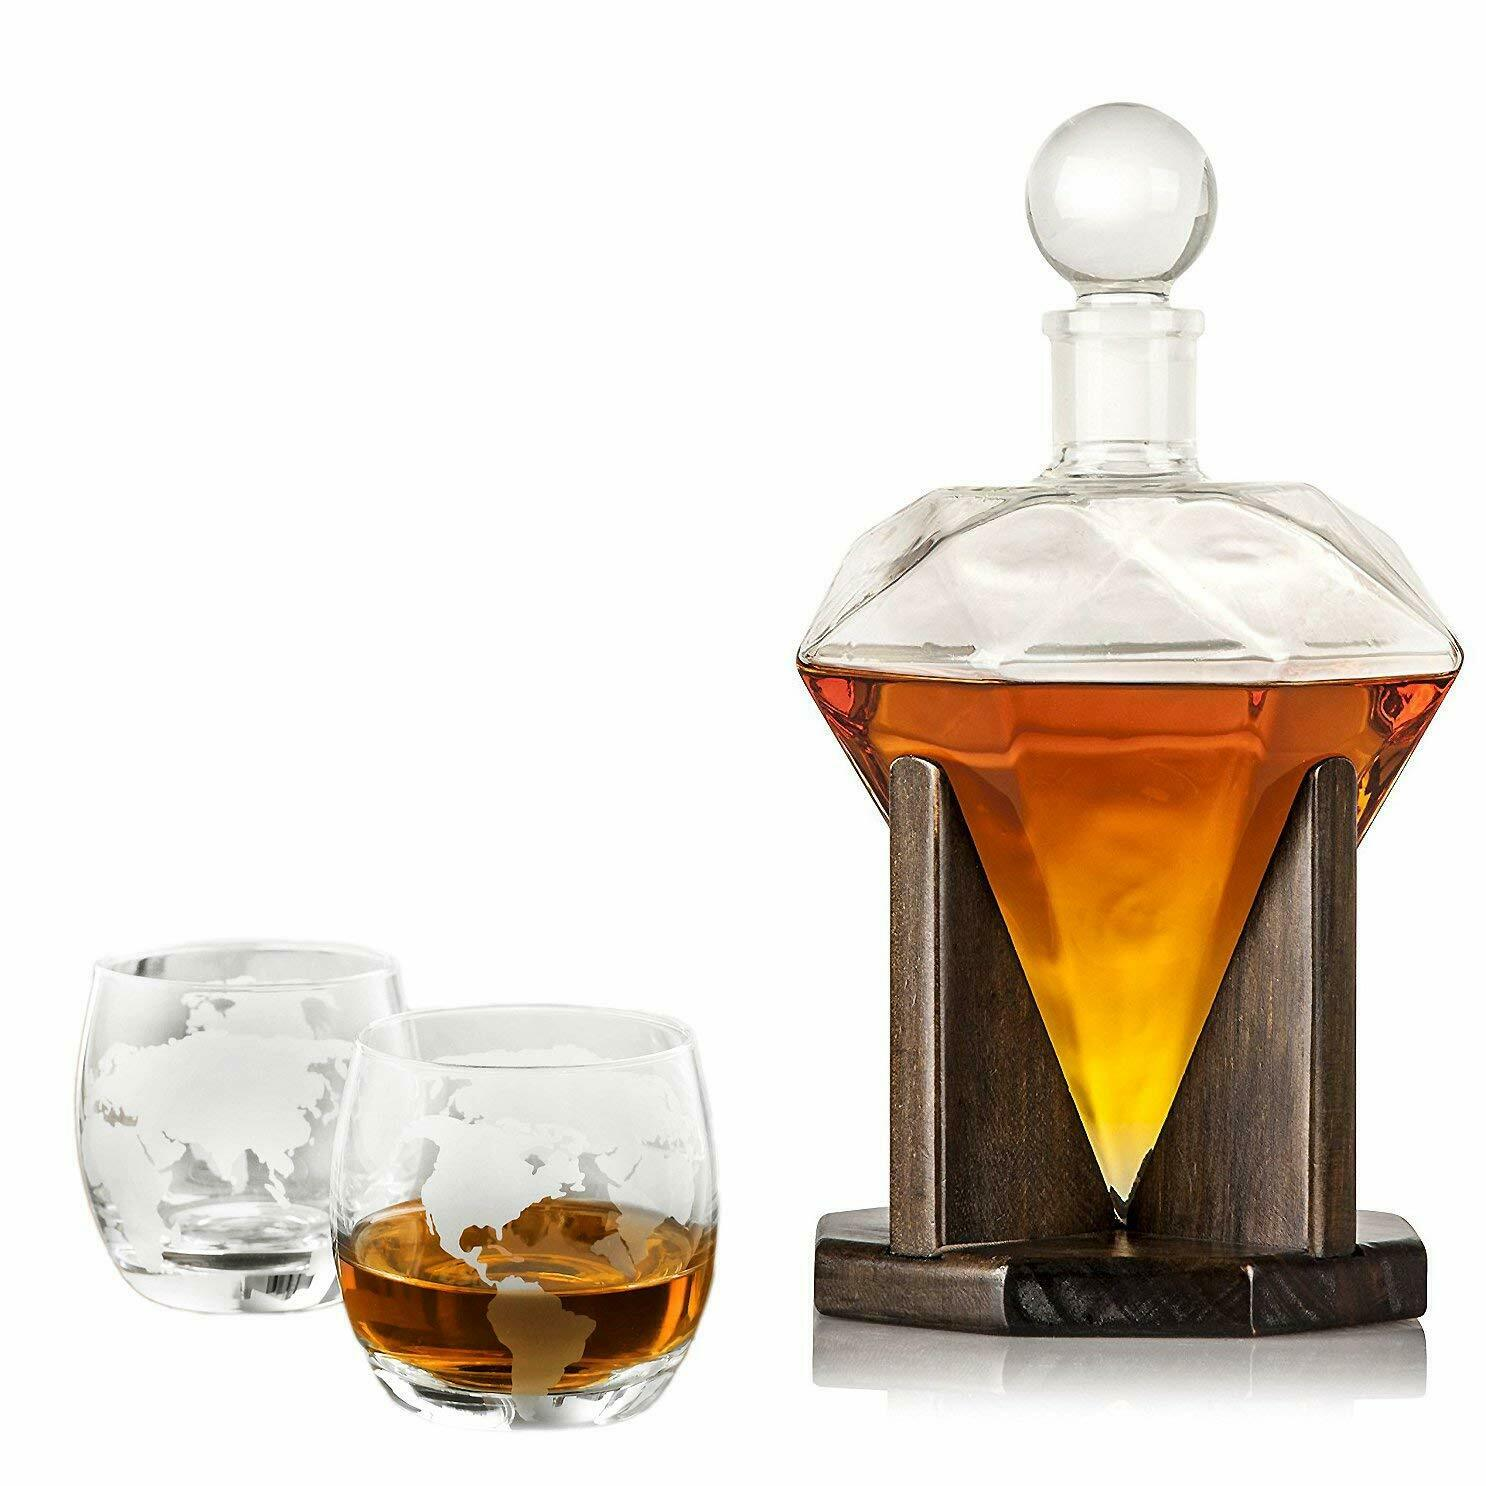 40 Oz 'Diamond' Handmade Whisky Decanter Set with wooden stand + Globe Glasses